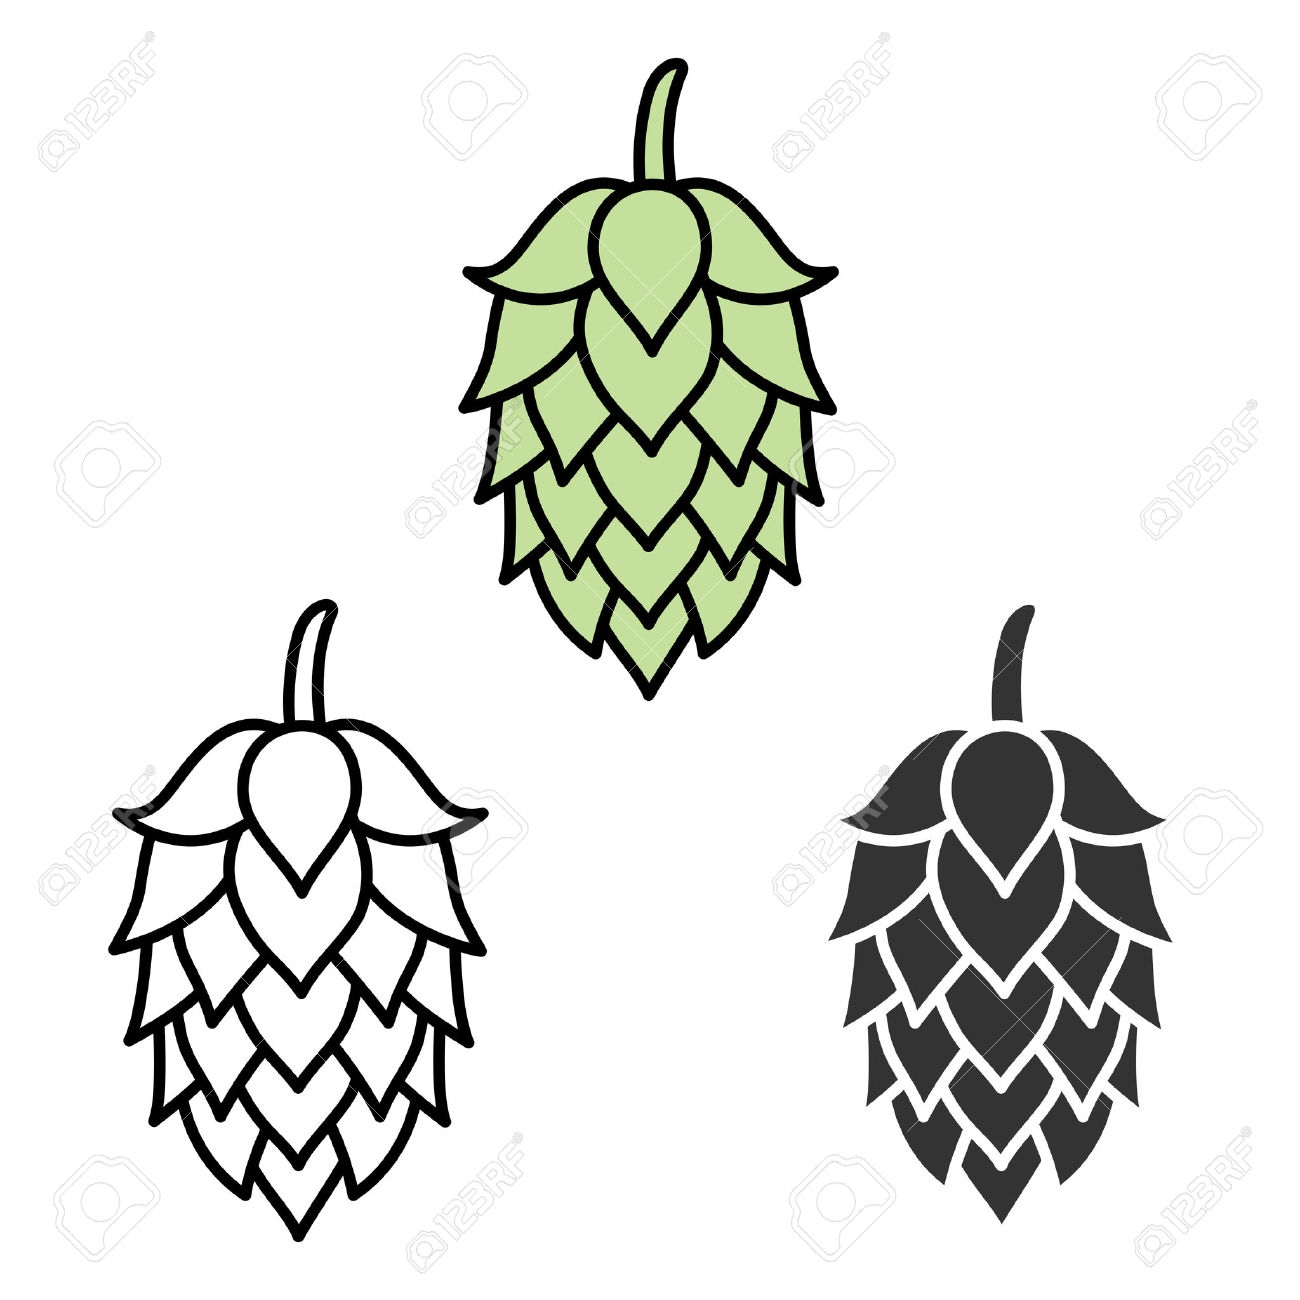 Hops clipart. Free for download on